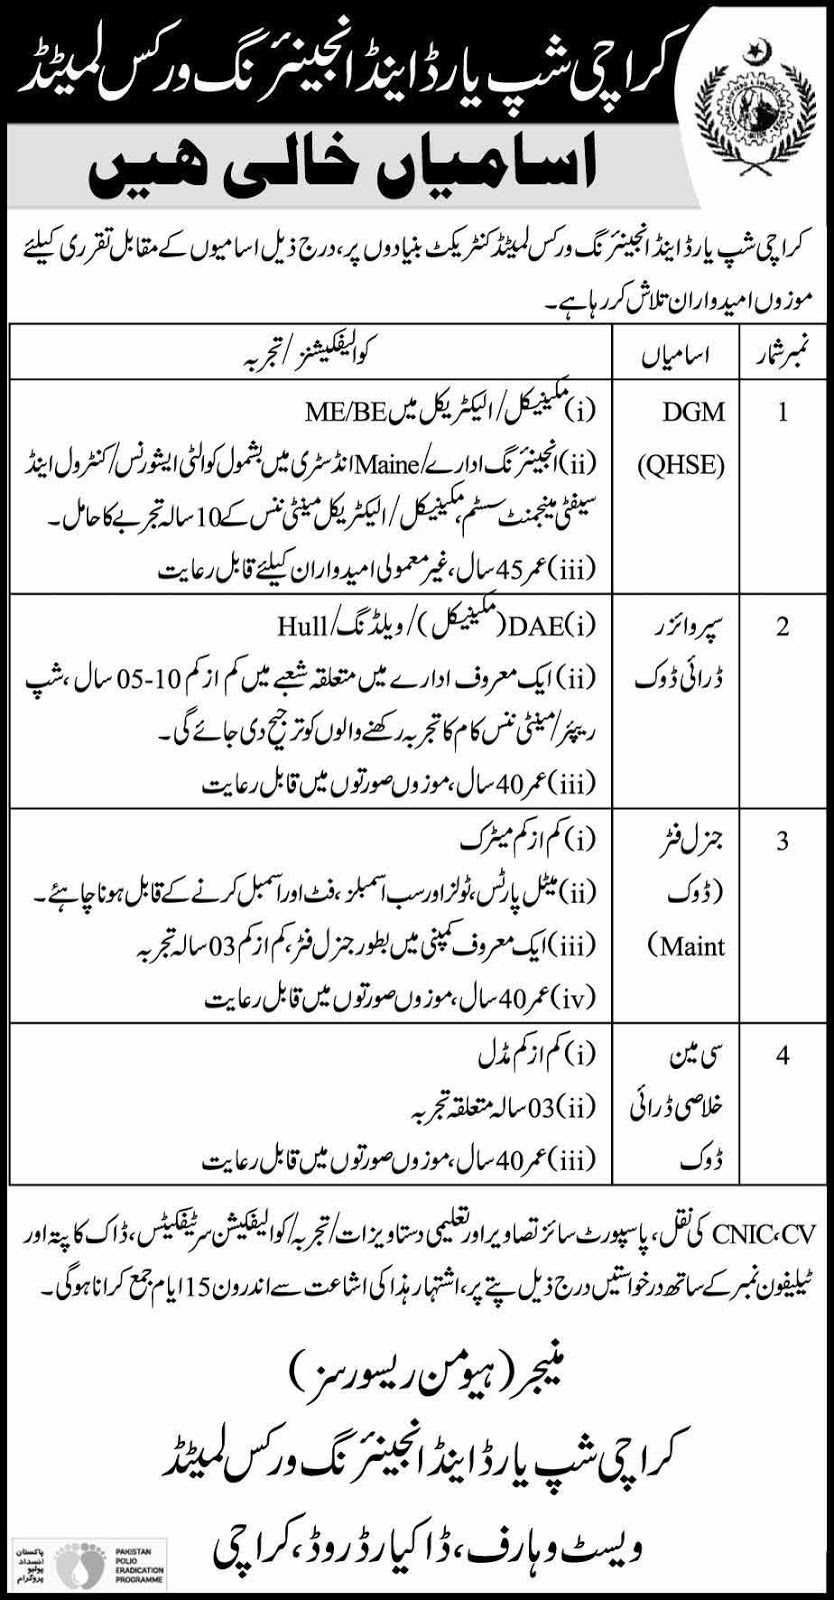 Karachi Shipyard & Engineering Works Limited 17 Nov 2019